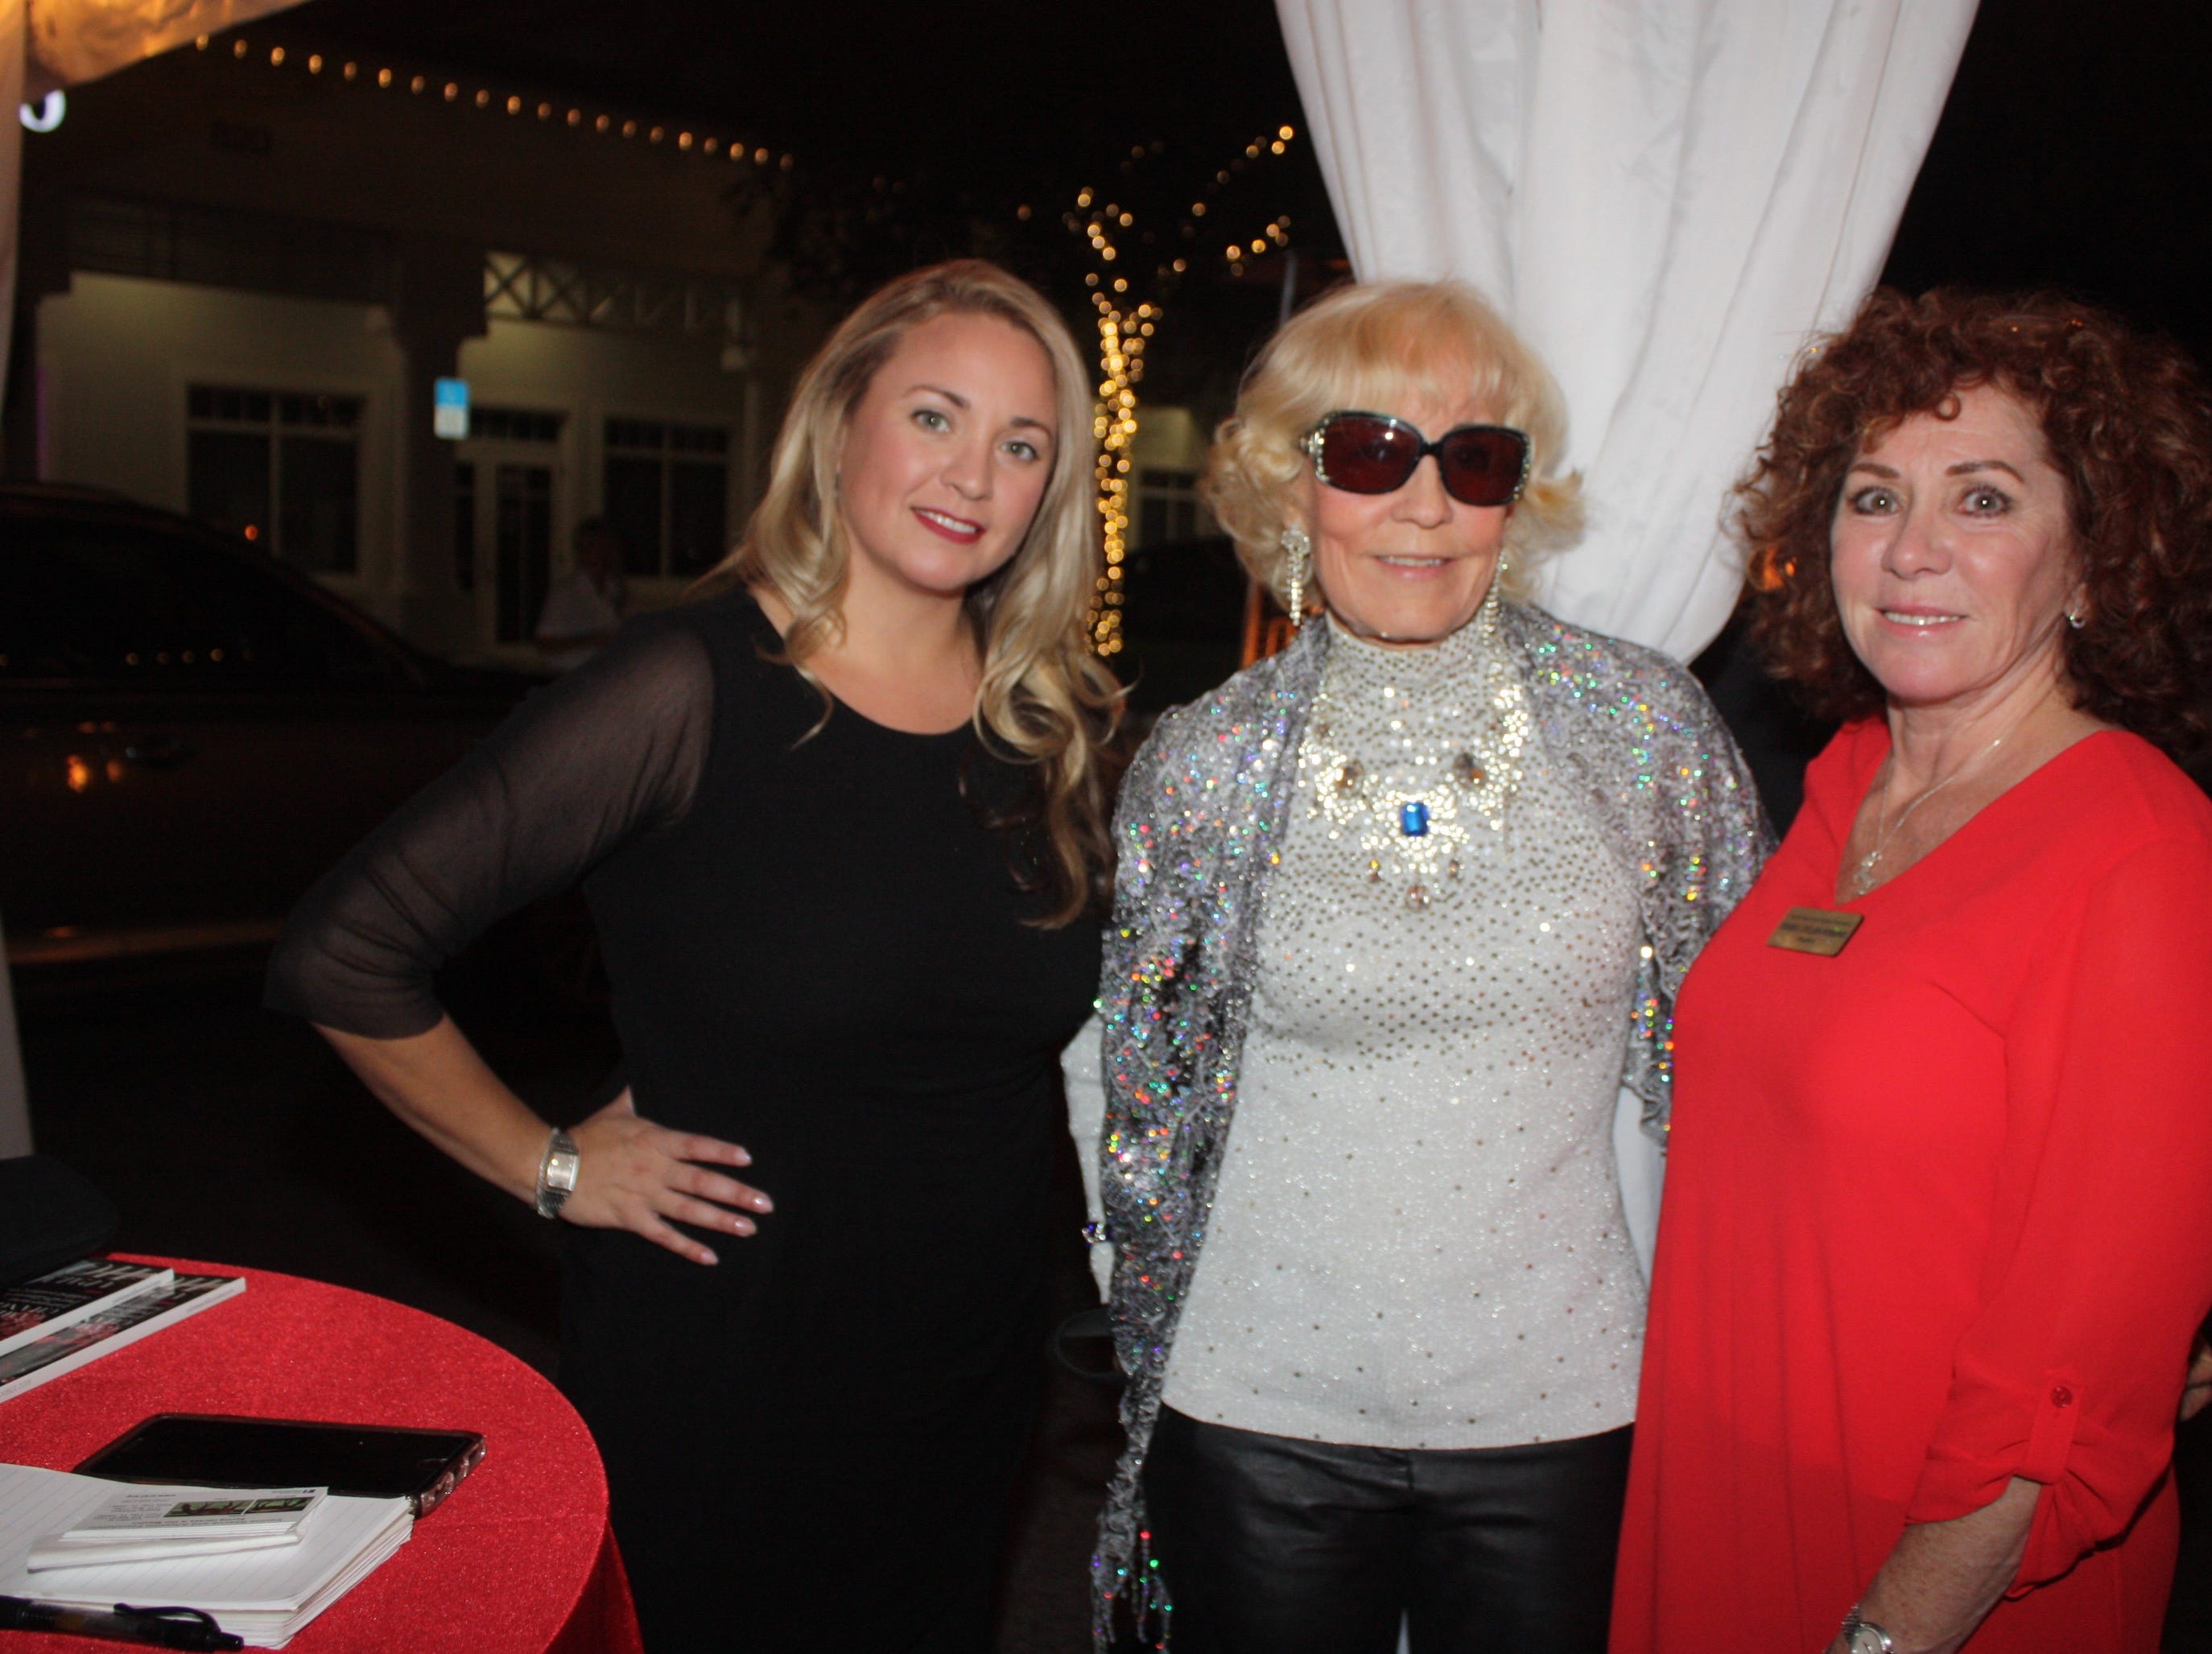 Melissa Saumure, left, Penny Sheltz and Denise LeClair-Robbins at the Provident Jewelry party for the Equine Rescue and Adoption Foundation.